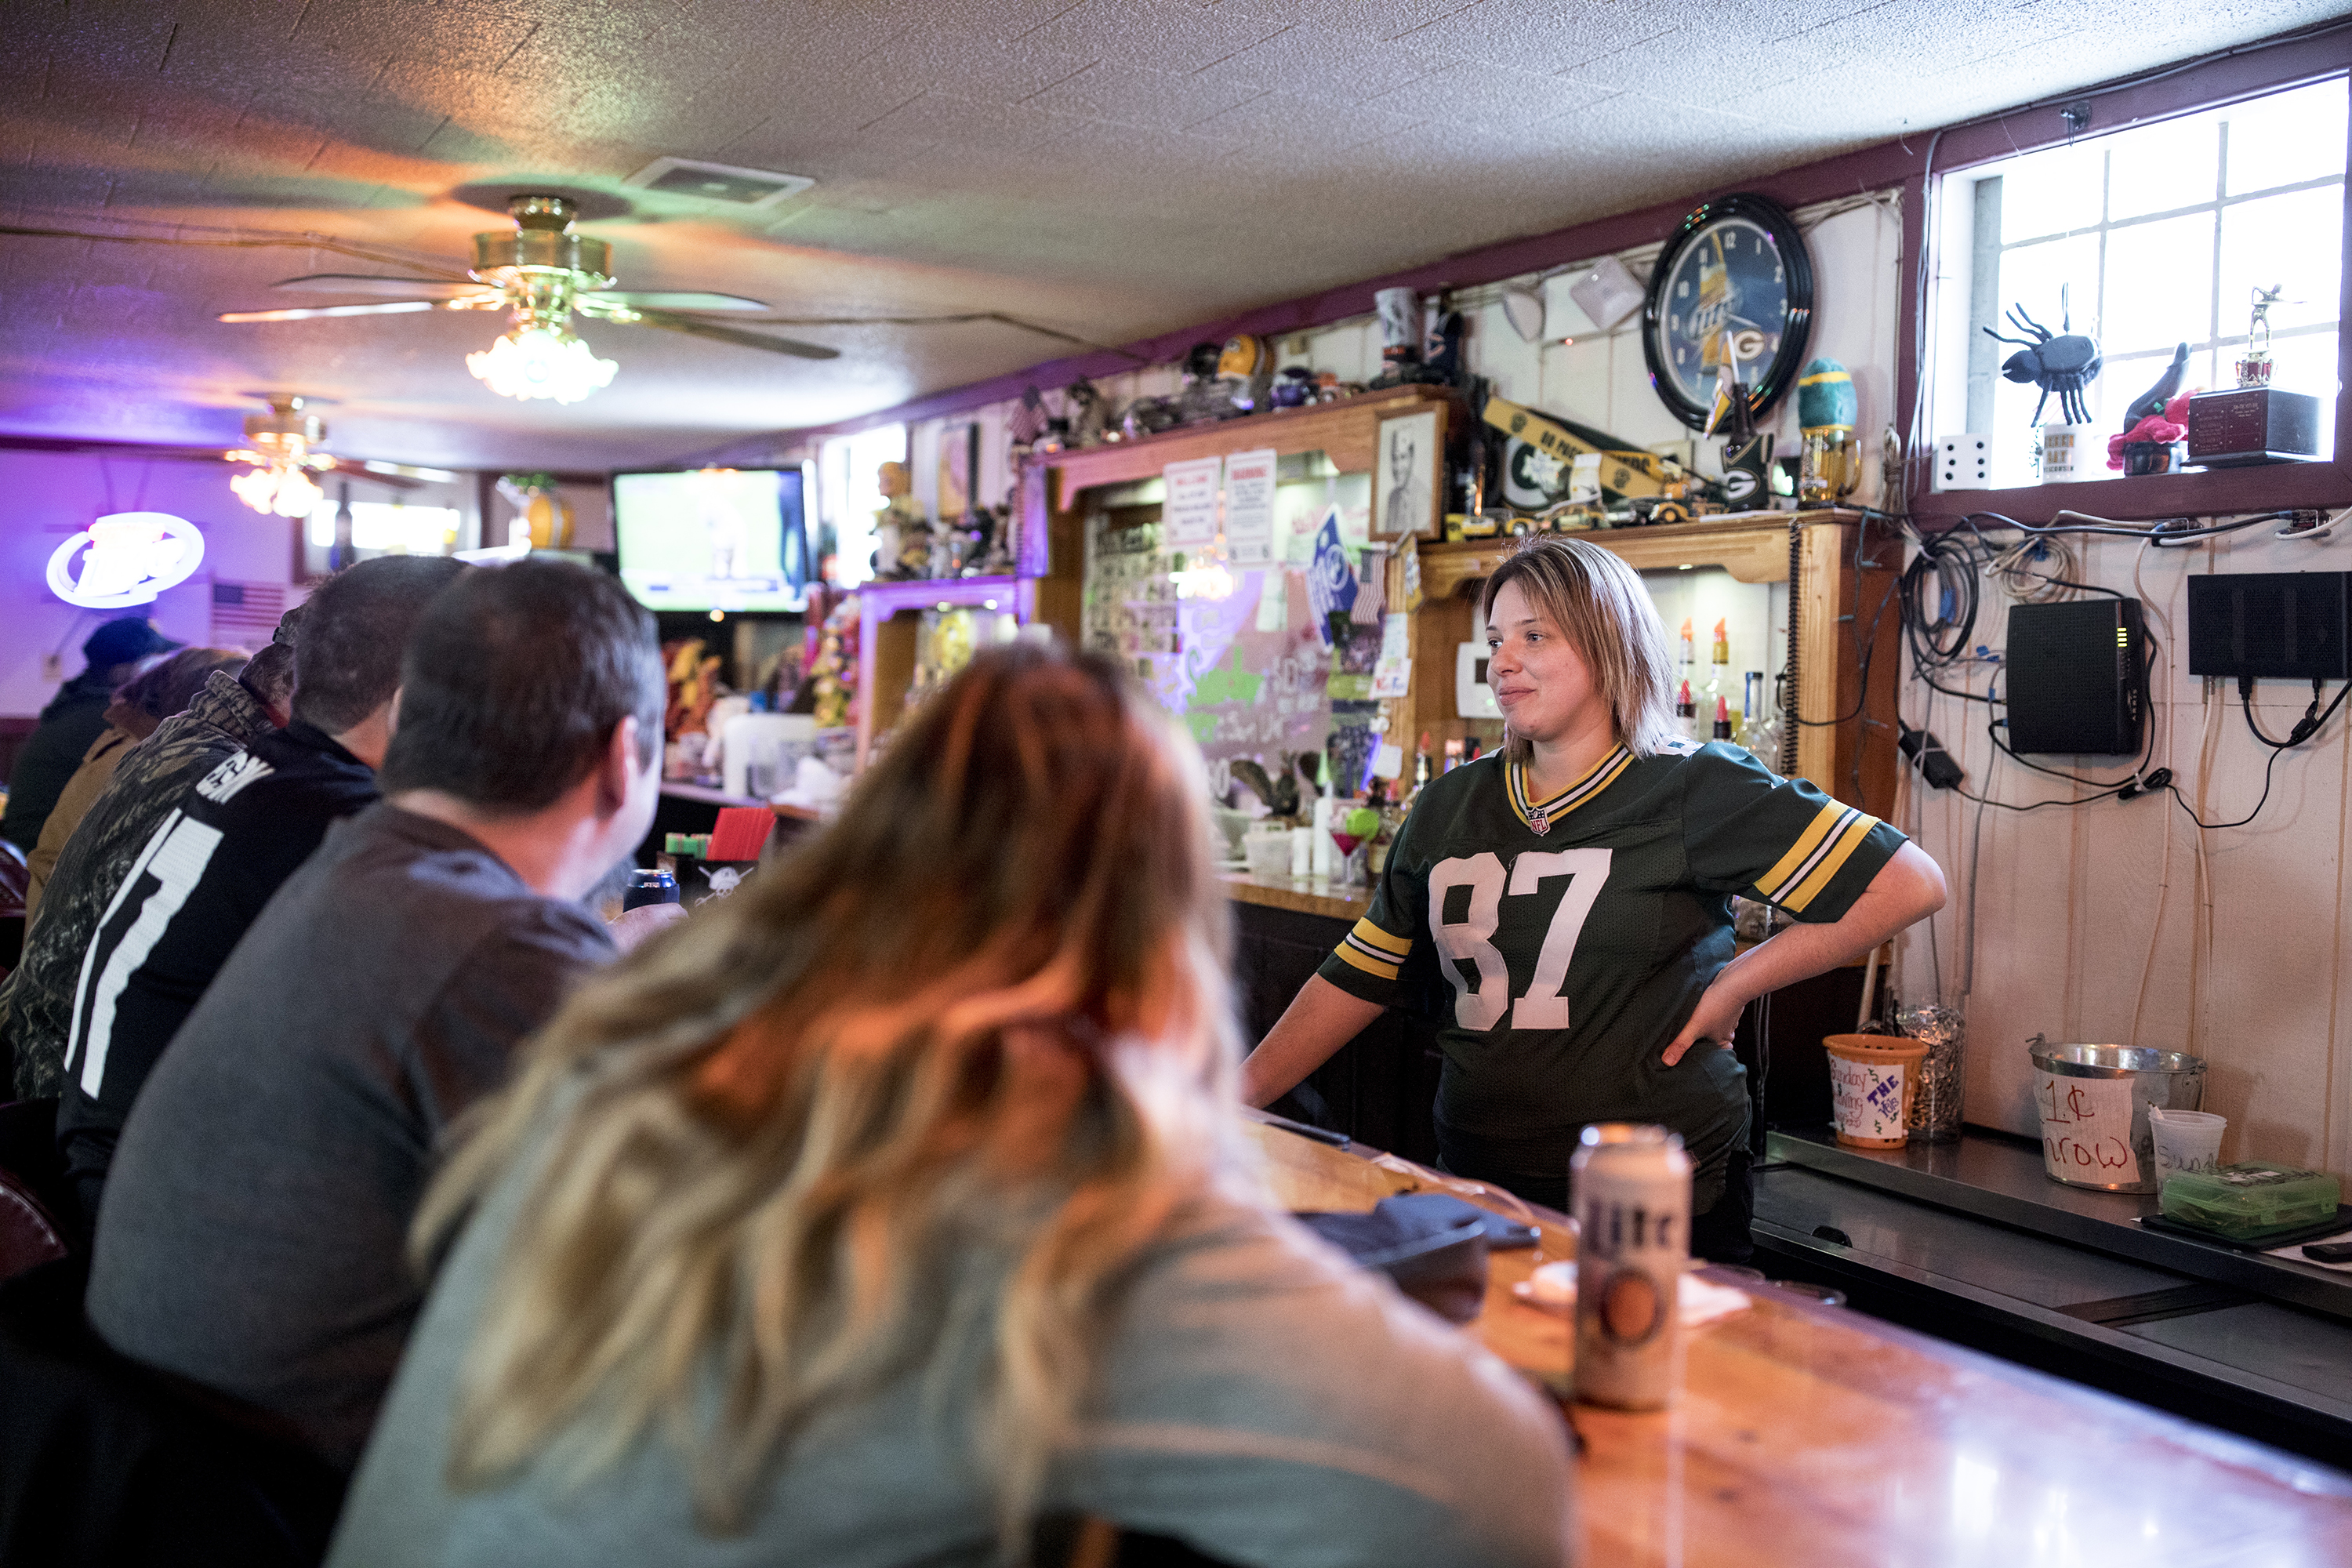 Theresa Bennett, 33, of Holmen, Wis., is one of the owners of the Vet's Bar in Trempealeau, Wis. The bar has a